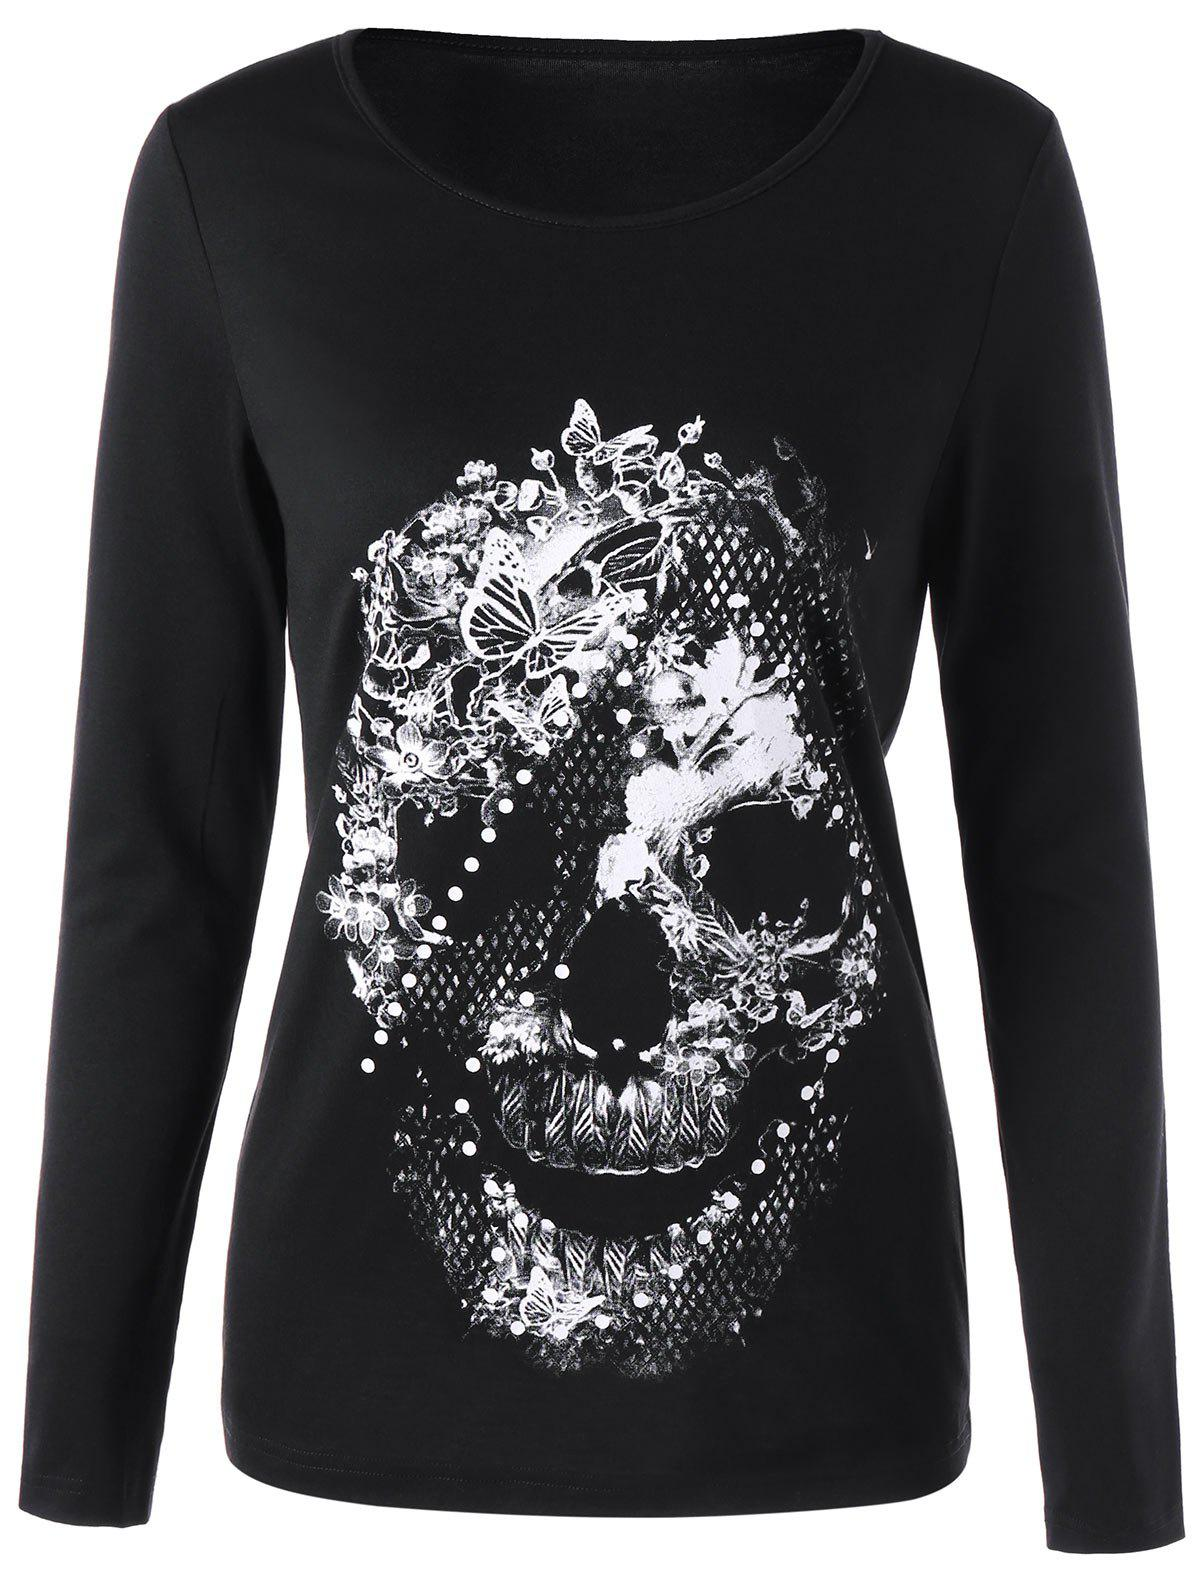 Butterfly Skull Long Sleeve T-shirt 226048904